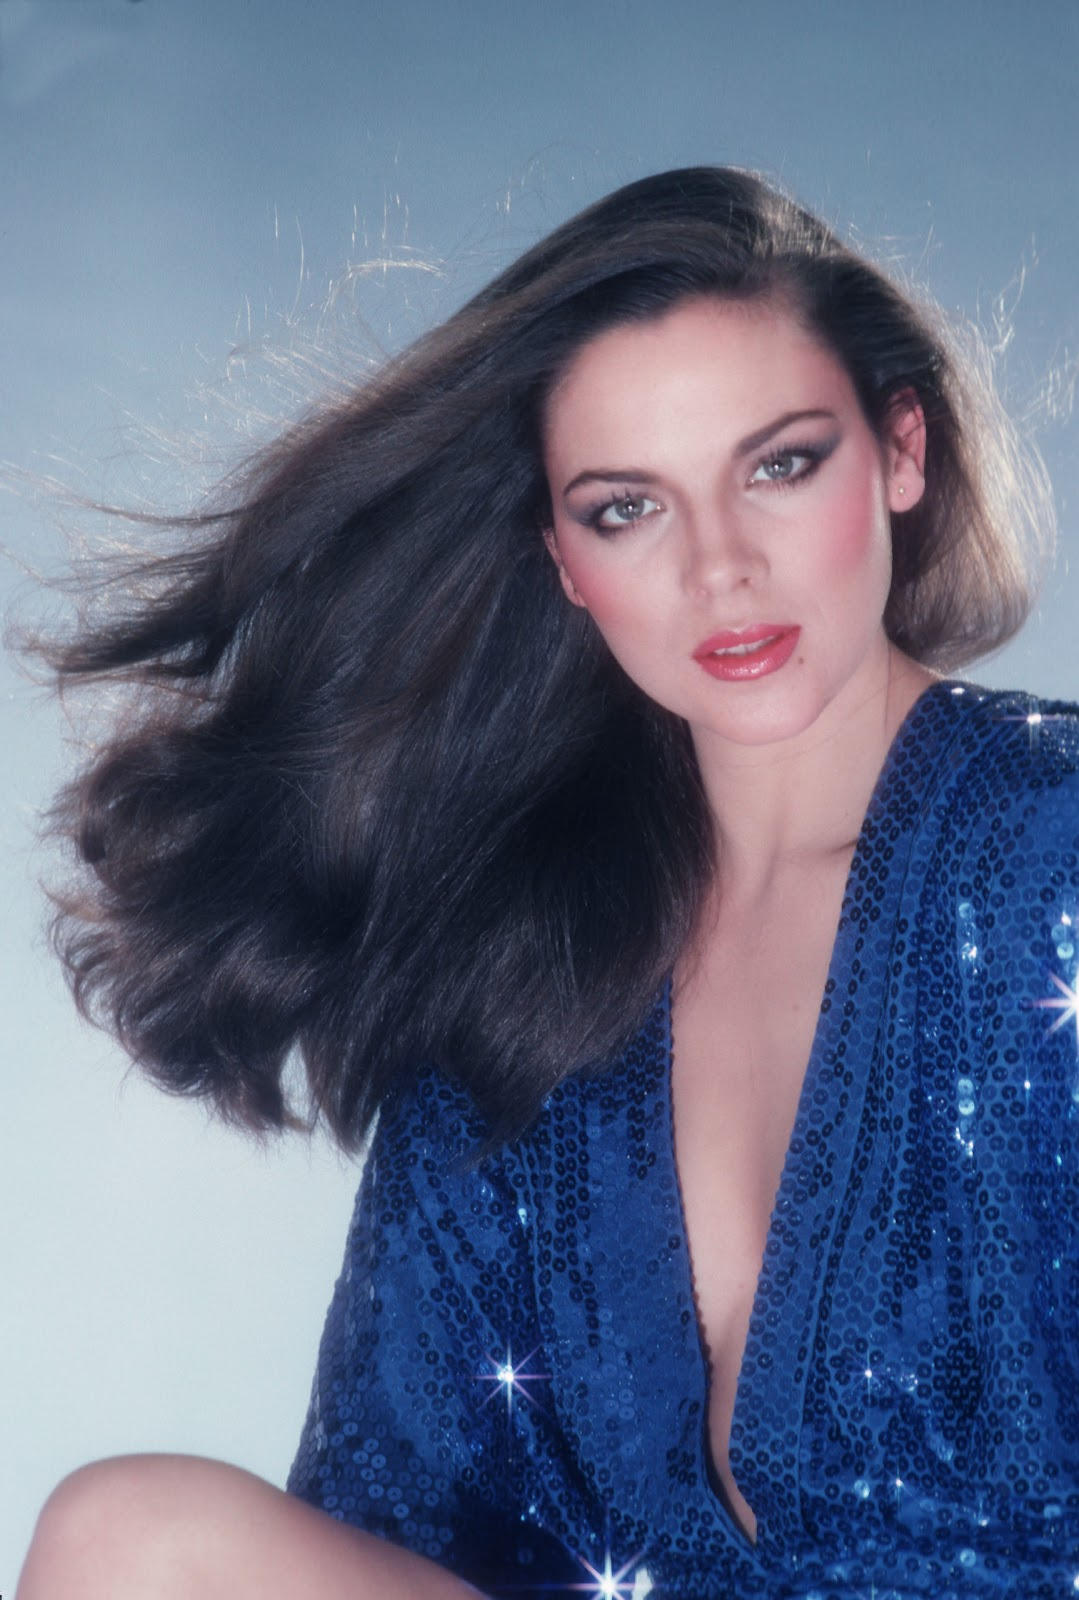 Kim Cattrall as Young Woman 3 Kim Cattrall